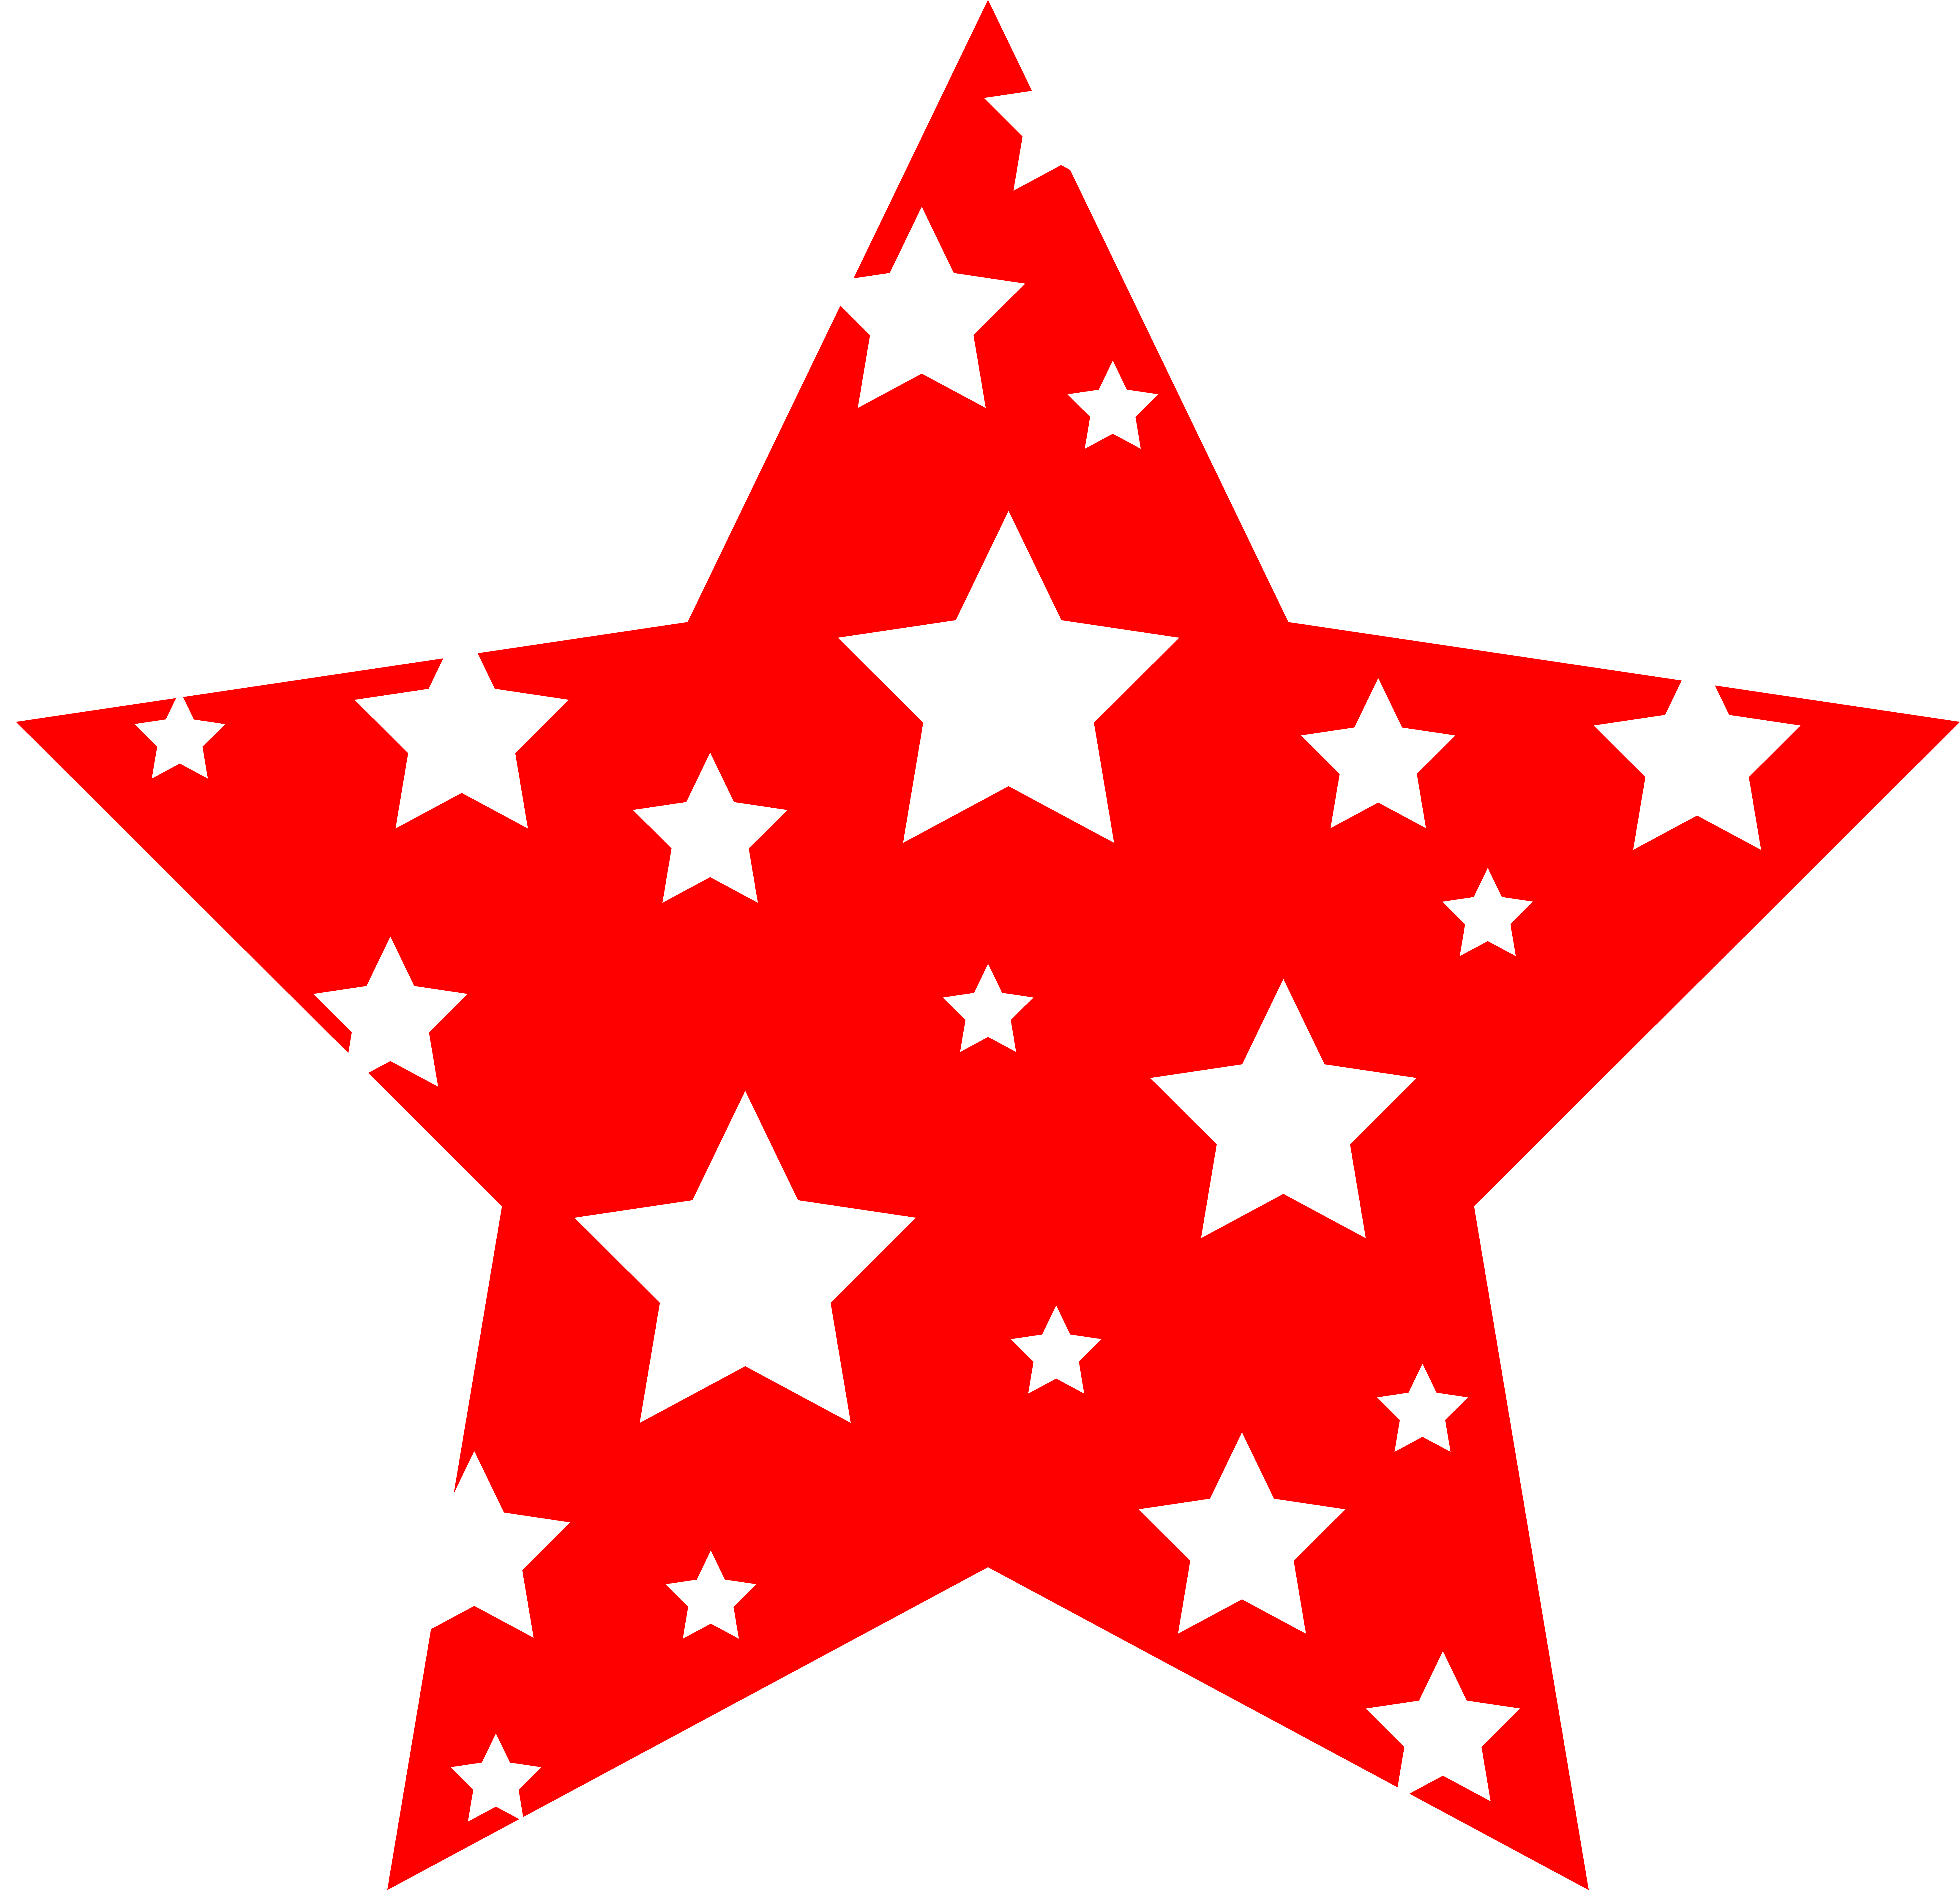 Red and White Starry Star - Free Clip Art